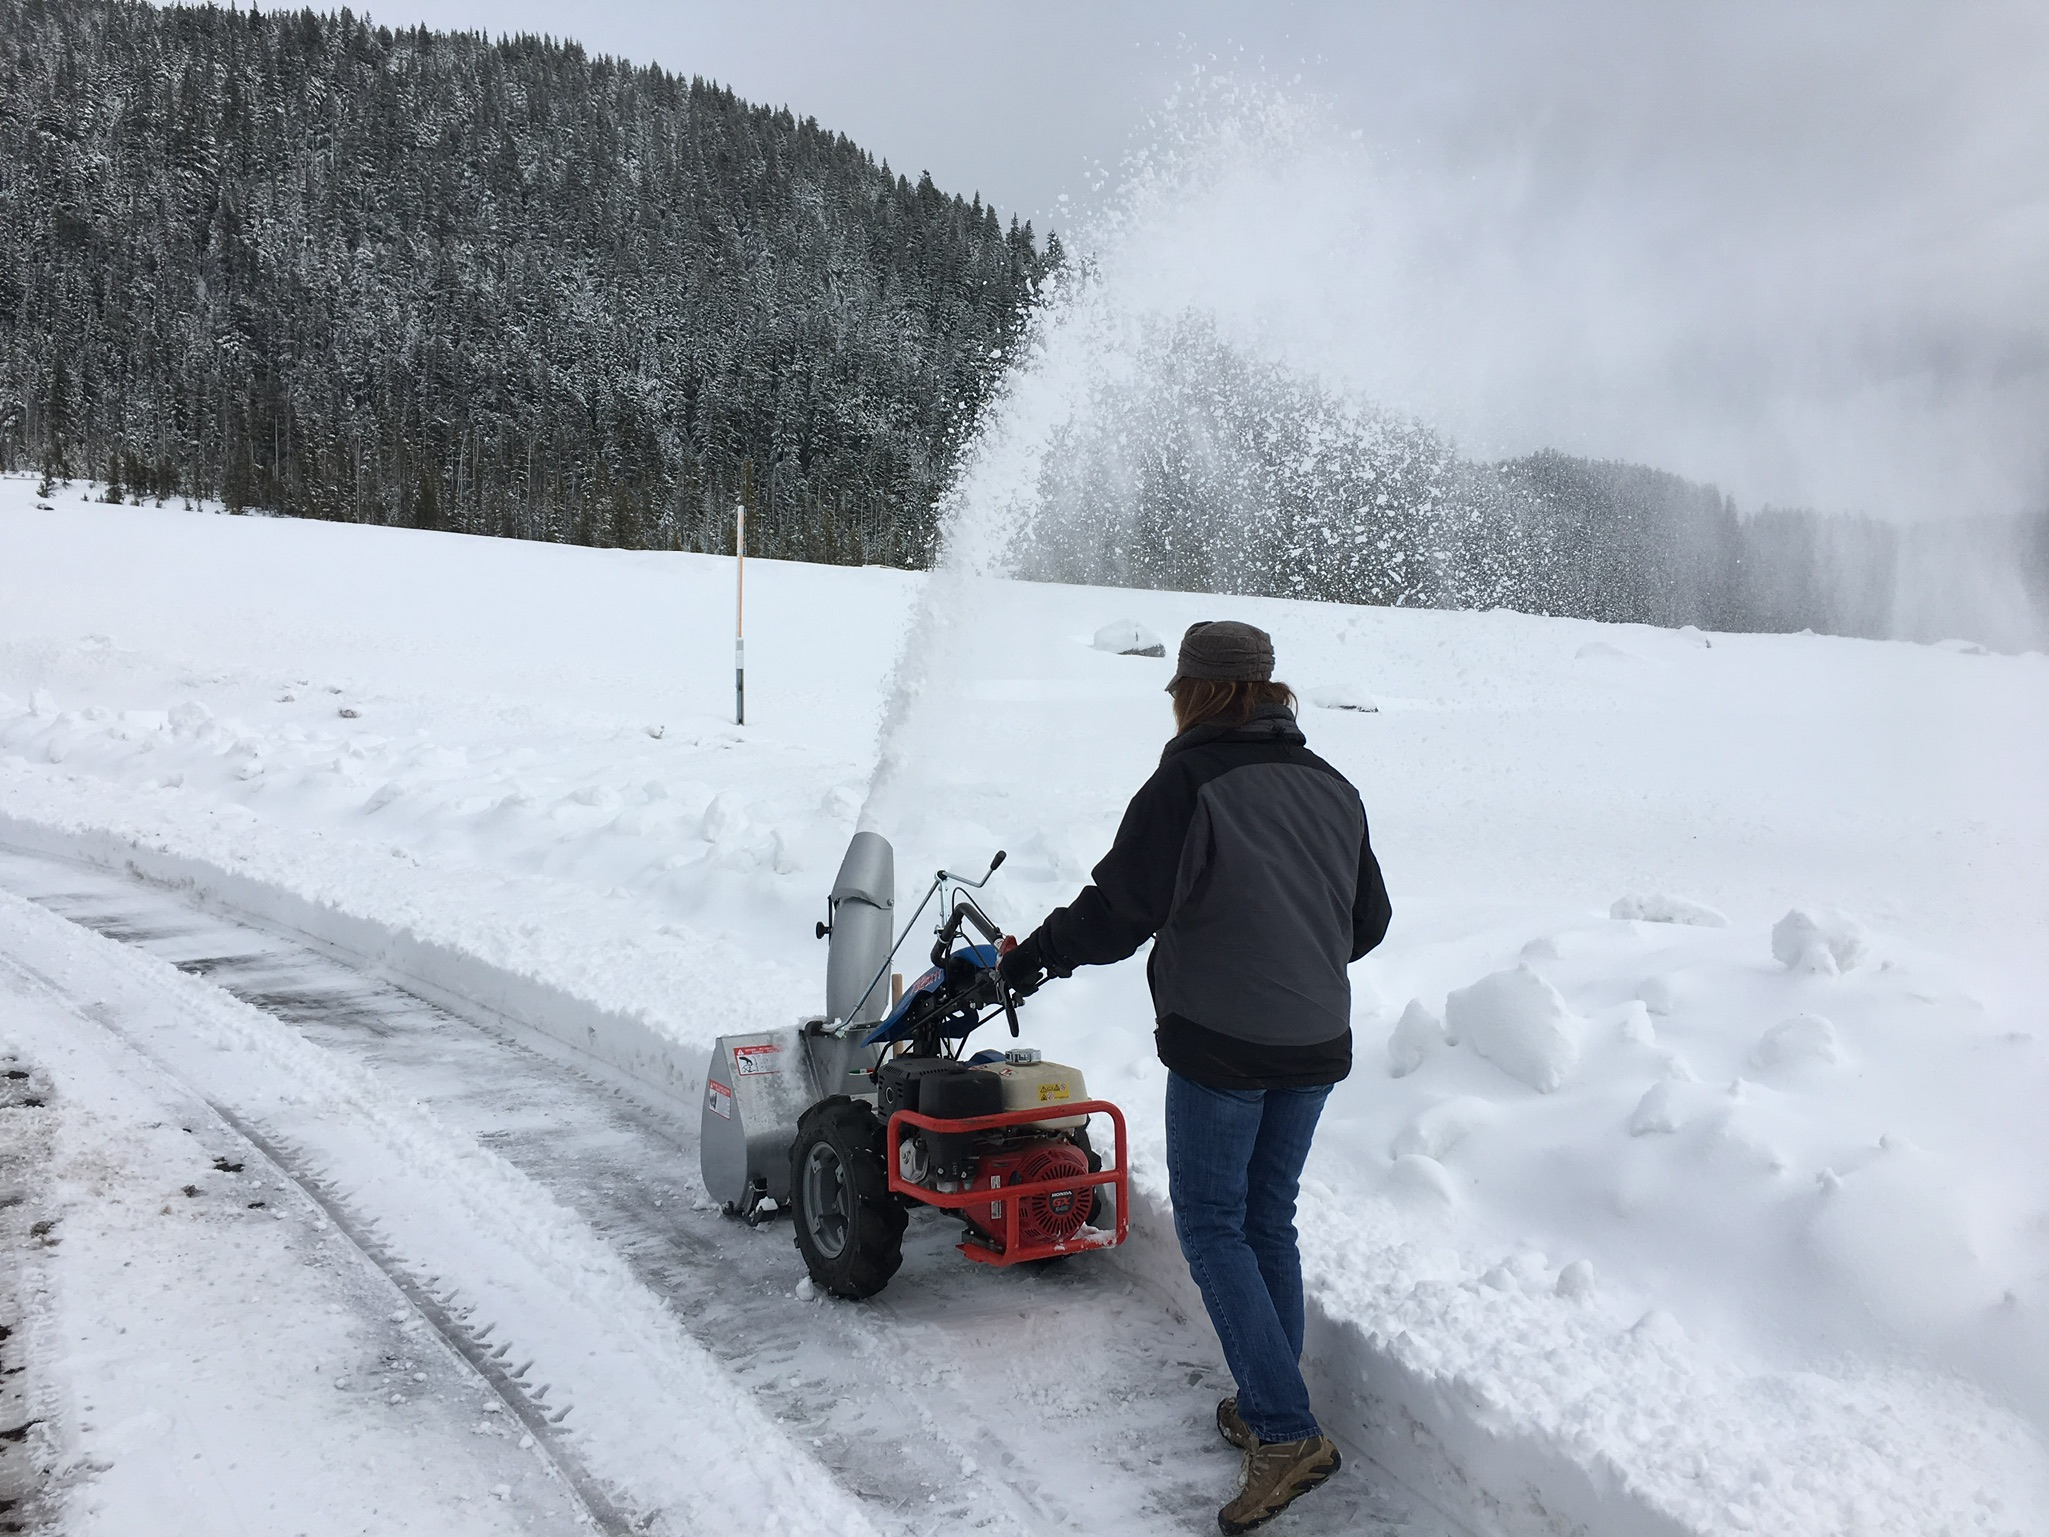 Clearing heavy snow on Mt. Hood with a BCS Snow Thrower.